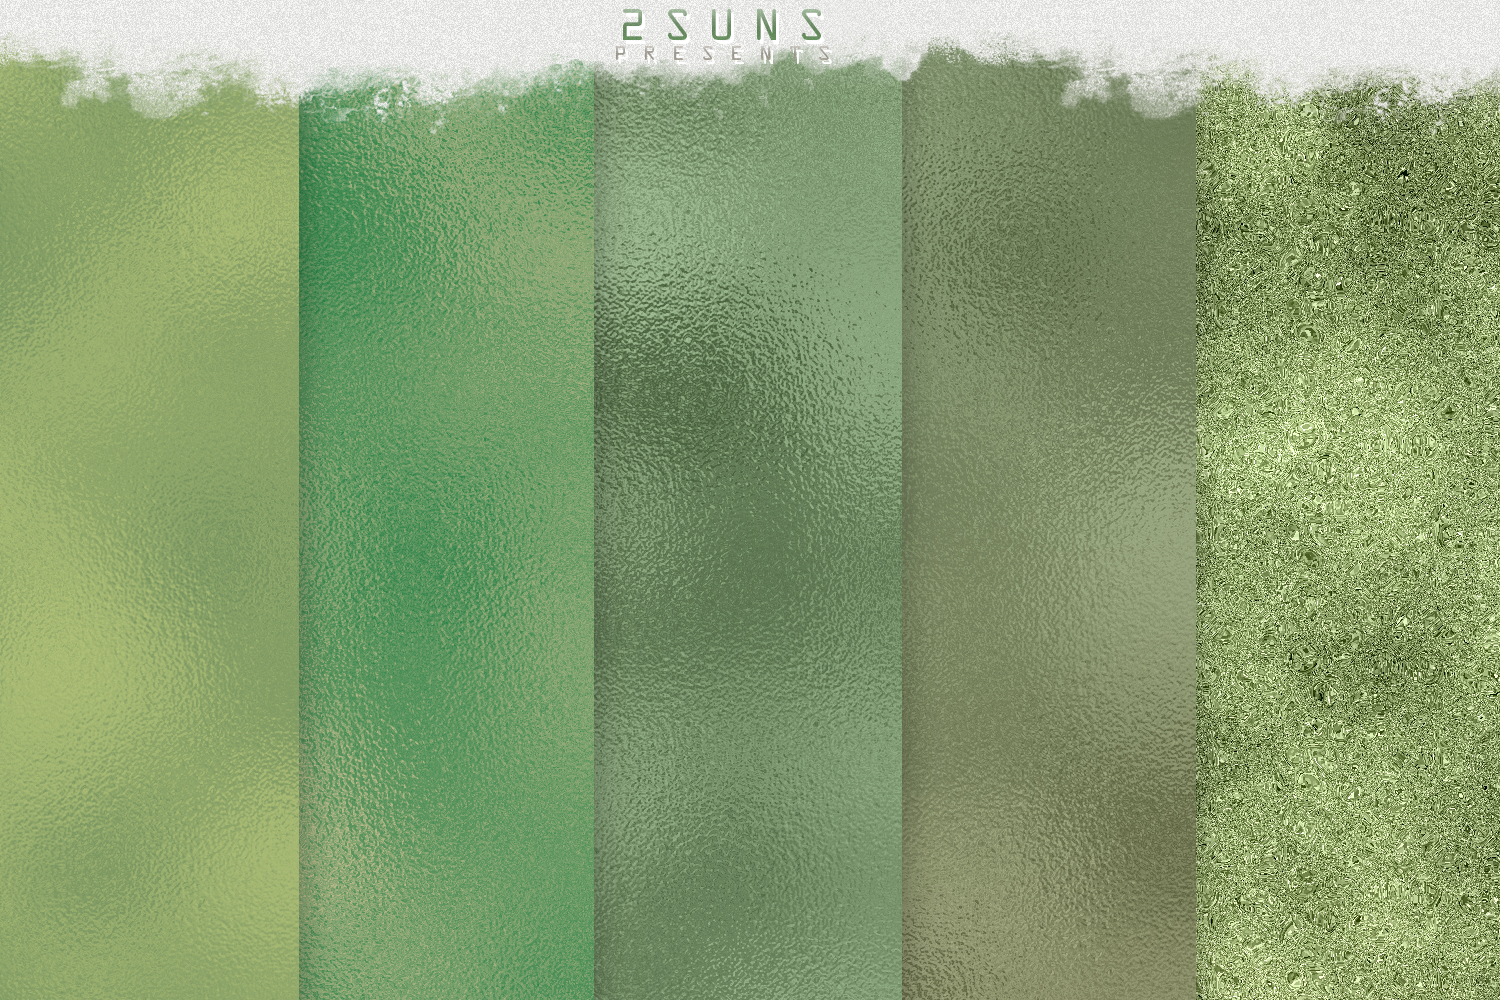 Green Dream digital papers textures, background, invitation example image 6